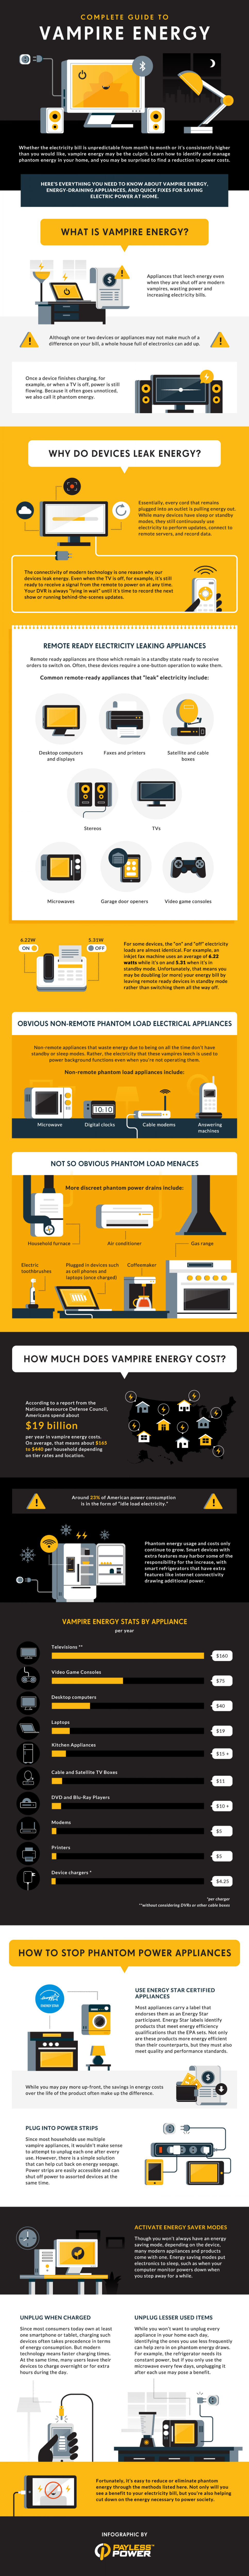 Complete Guide to Vampire Energy Infographic